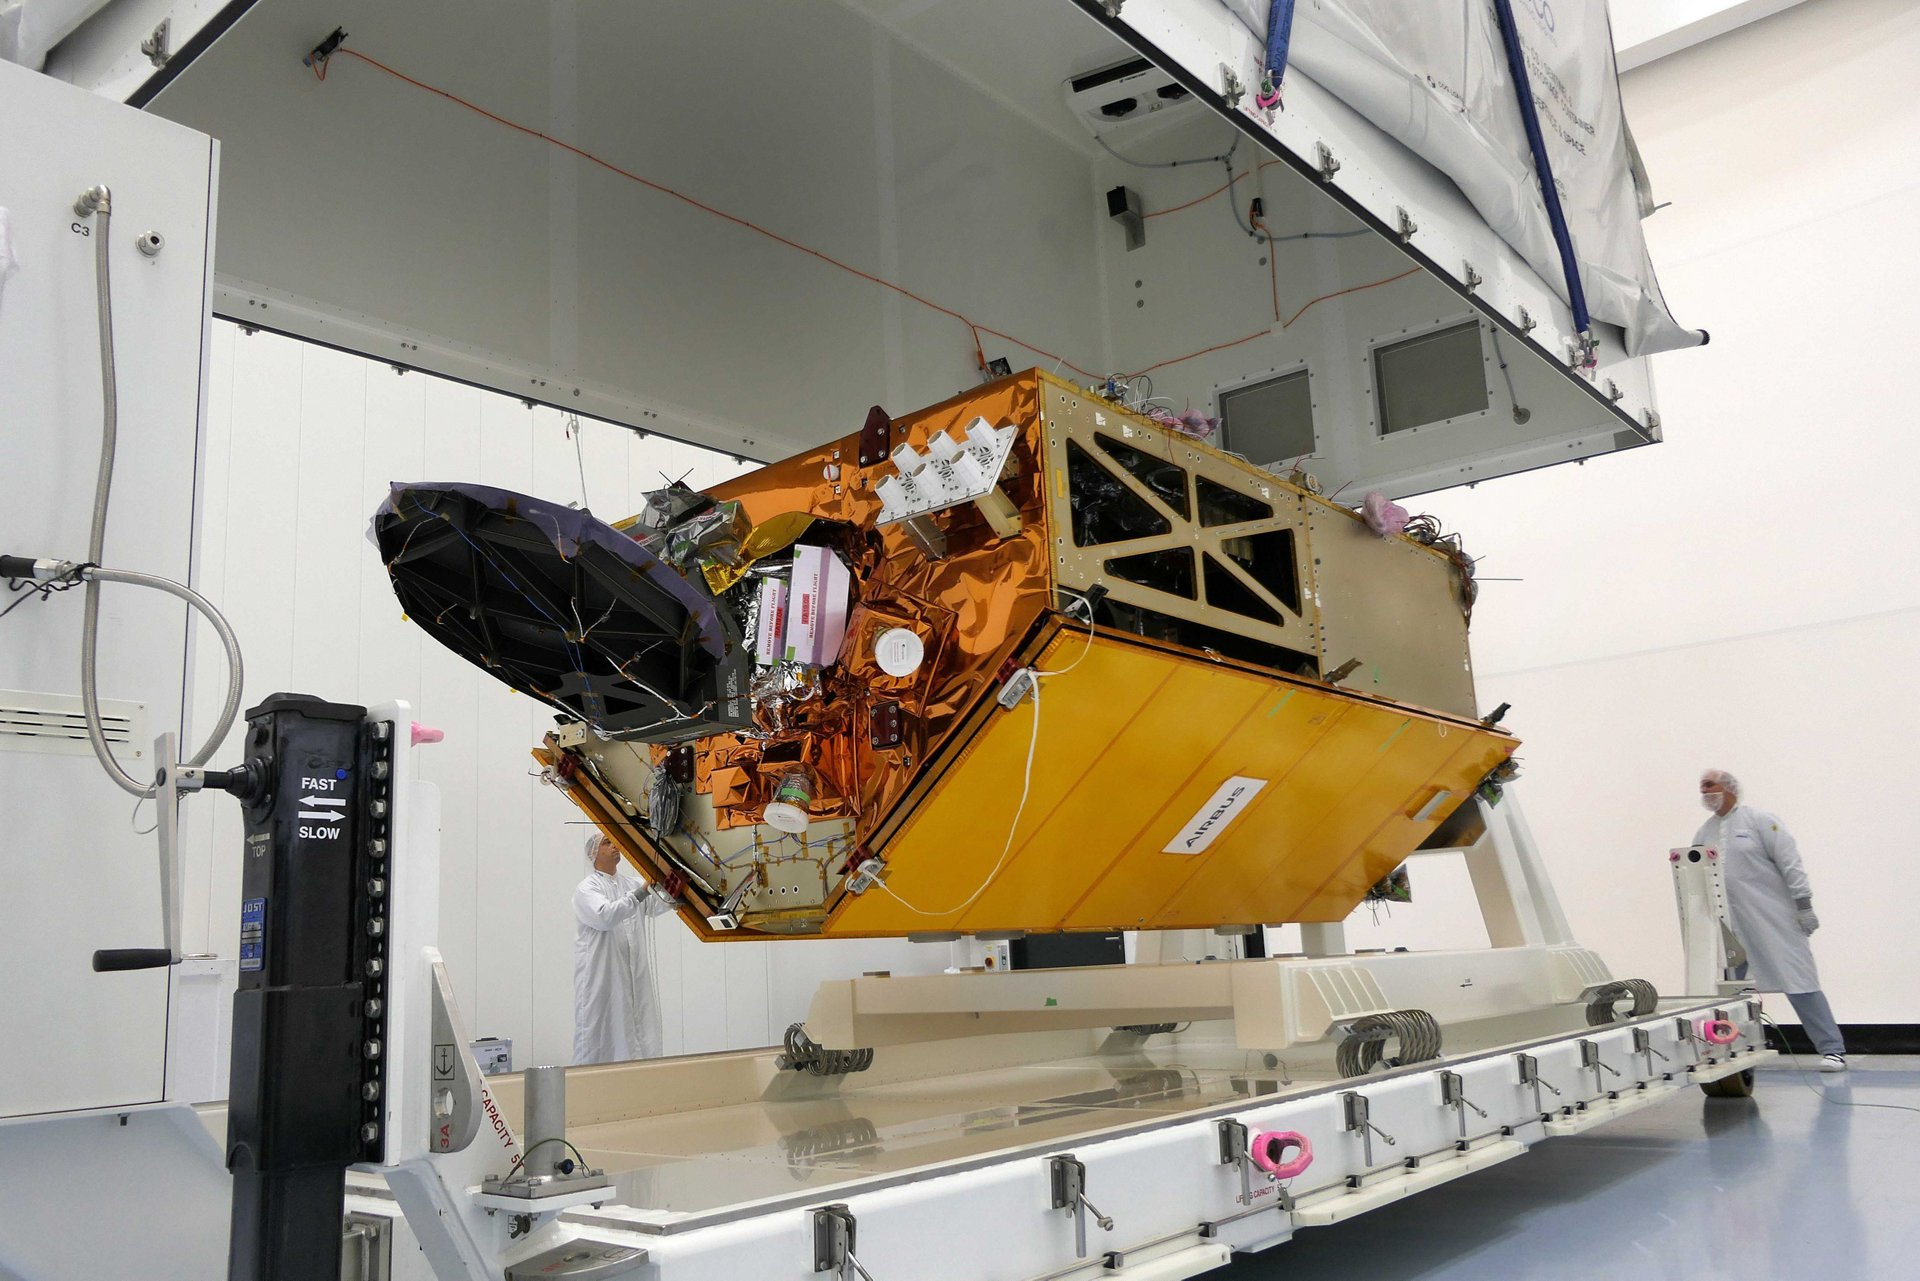 Sentinel-6A, built by Airbus (Friedrichshafen/Germany) will provide high accuracy altimetry for measuring global sea-surface height, primarily for operational oceanography and for climate studies. It is a cooperative mission developed in partnership between Europe (EU, ESA and EUMETSAT) and the U.S. (NOAA and NASA). It is planned for launch in 2020.